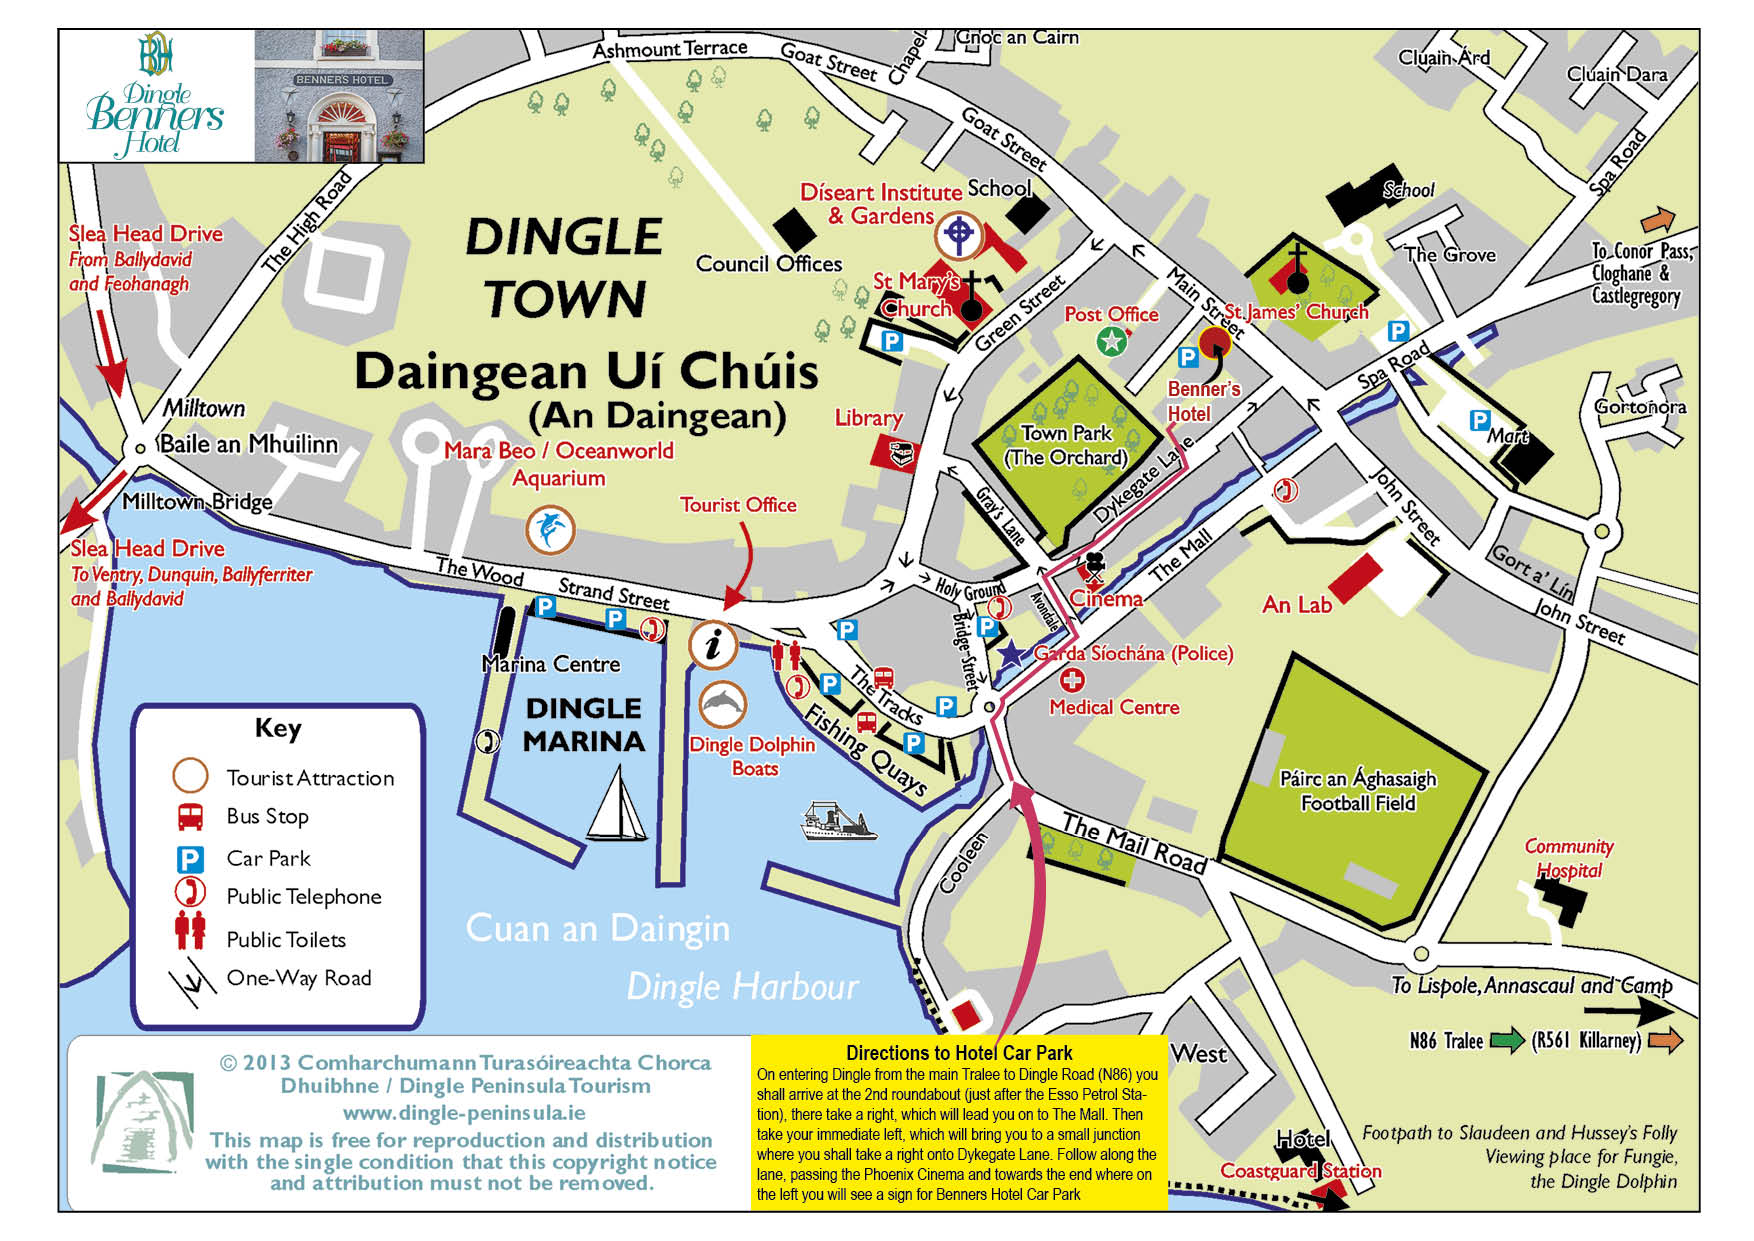 Dingle Bay Ireland Map.Dingle Hotels Hotel In Dingle Dingle Benners Hotel Kerry